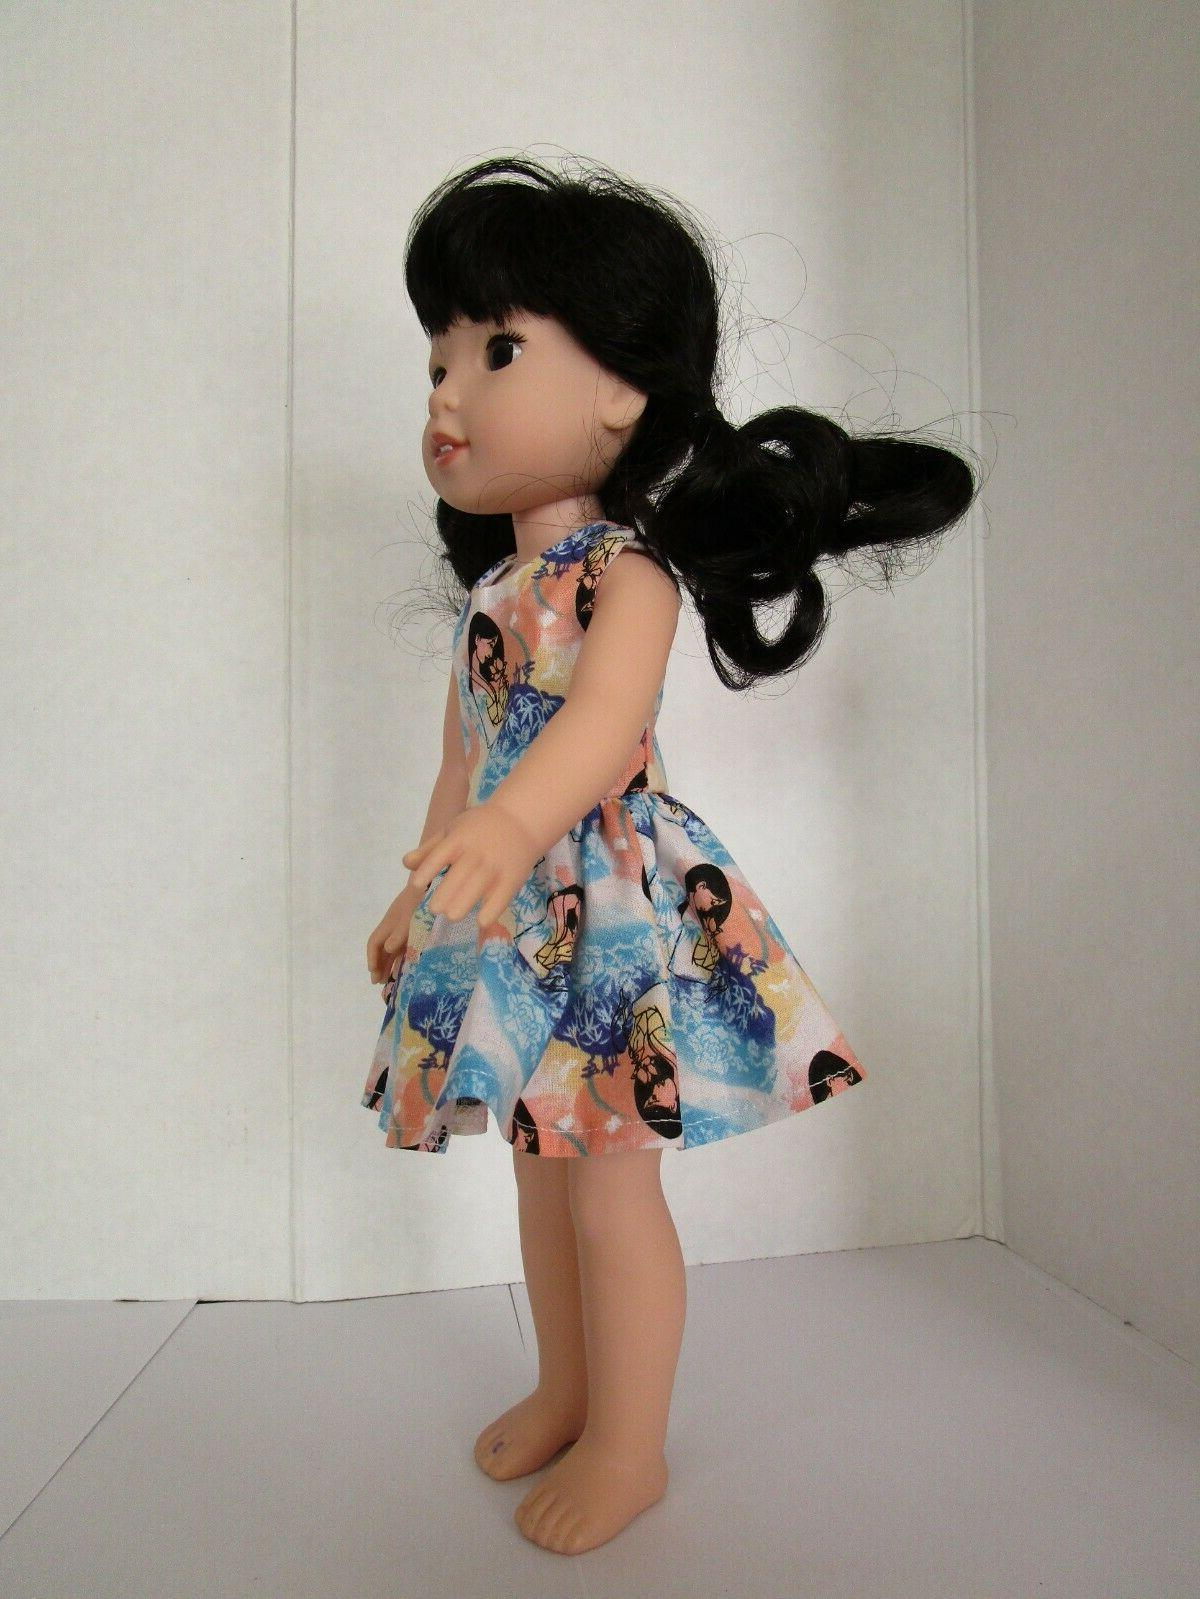 AMERICAN DOLL CLOTHES FOR GIRL INCH WELLIE WISHERS W8